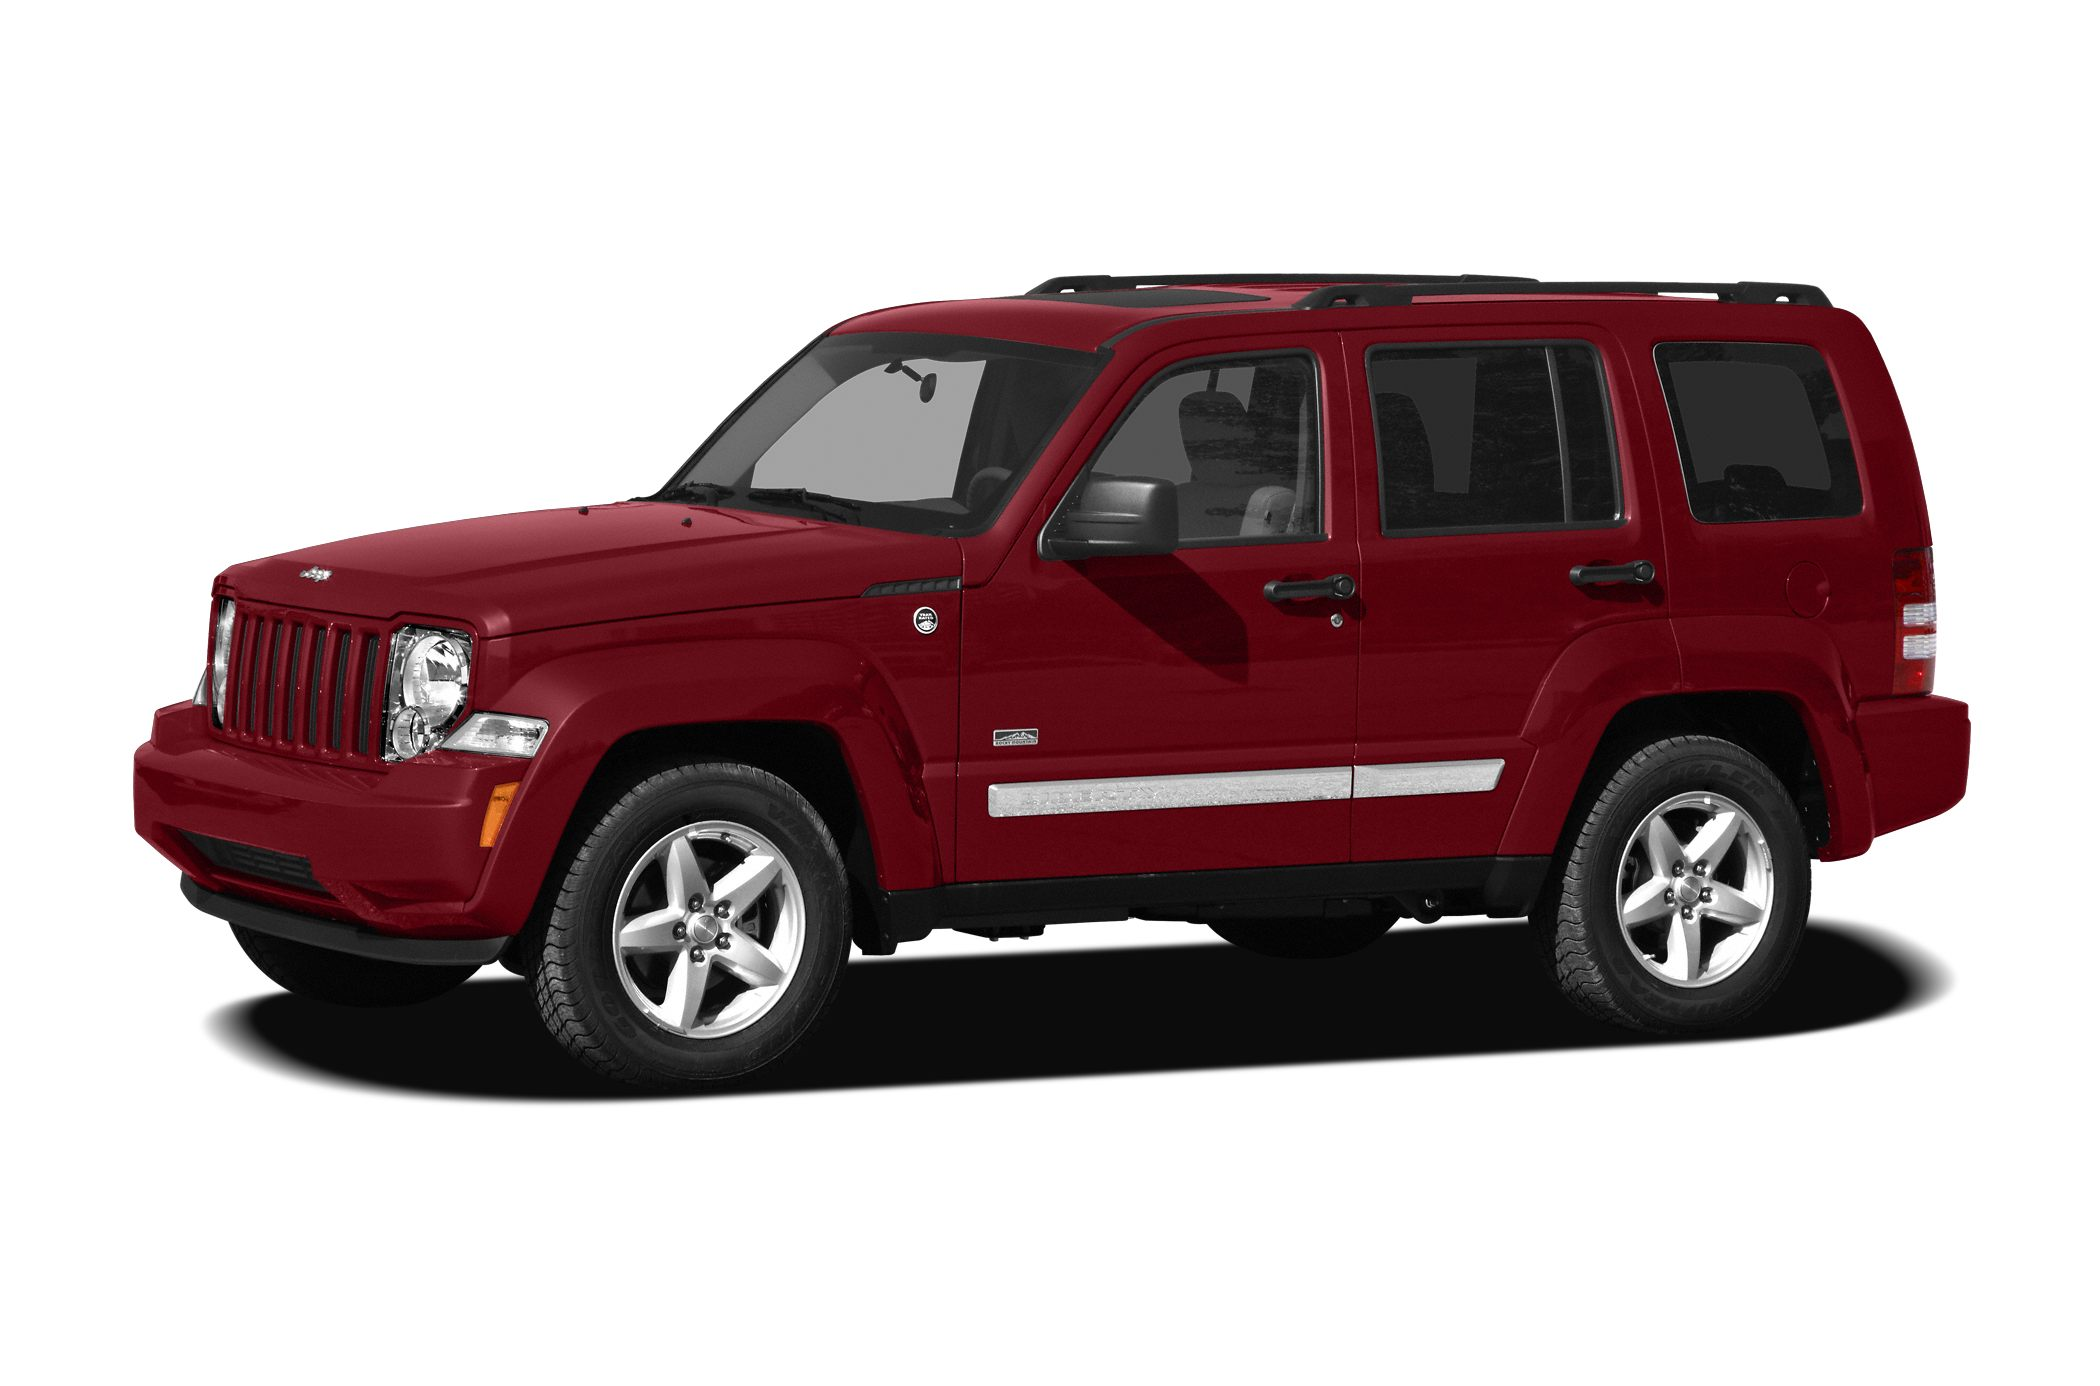 2011 Jeep Liberty Sport One owner and only 38K miles This vehicle is well equipped with a sky sli